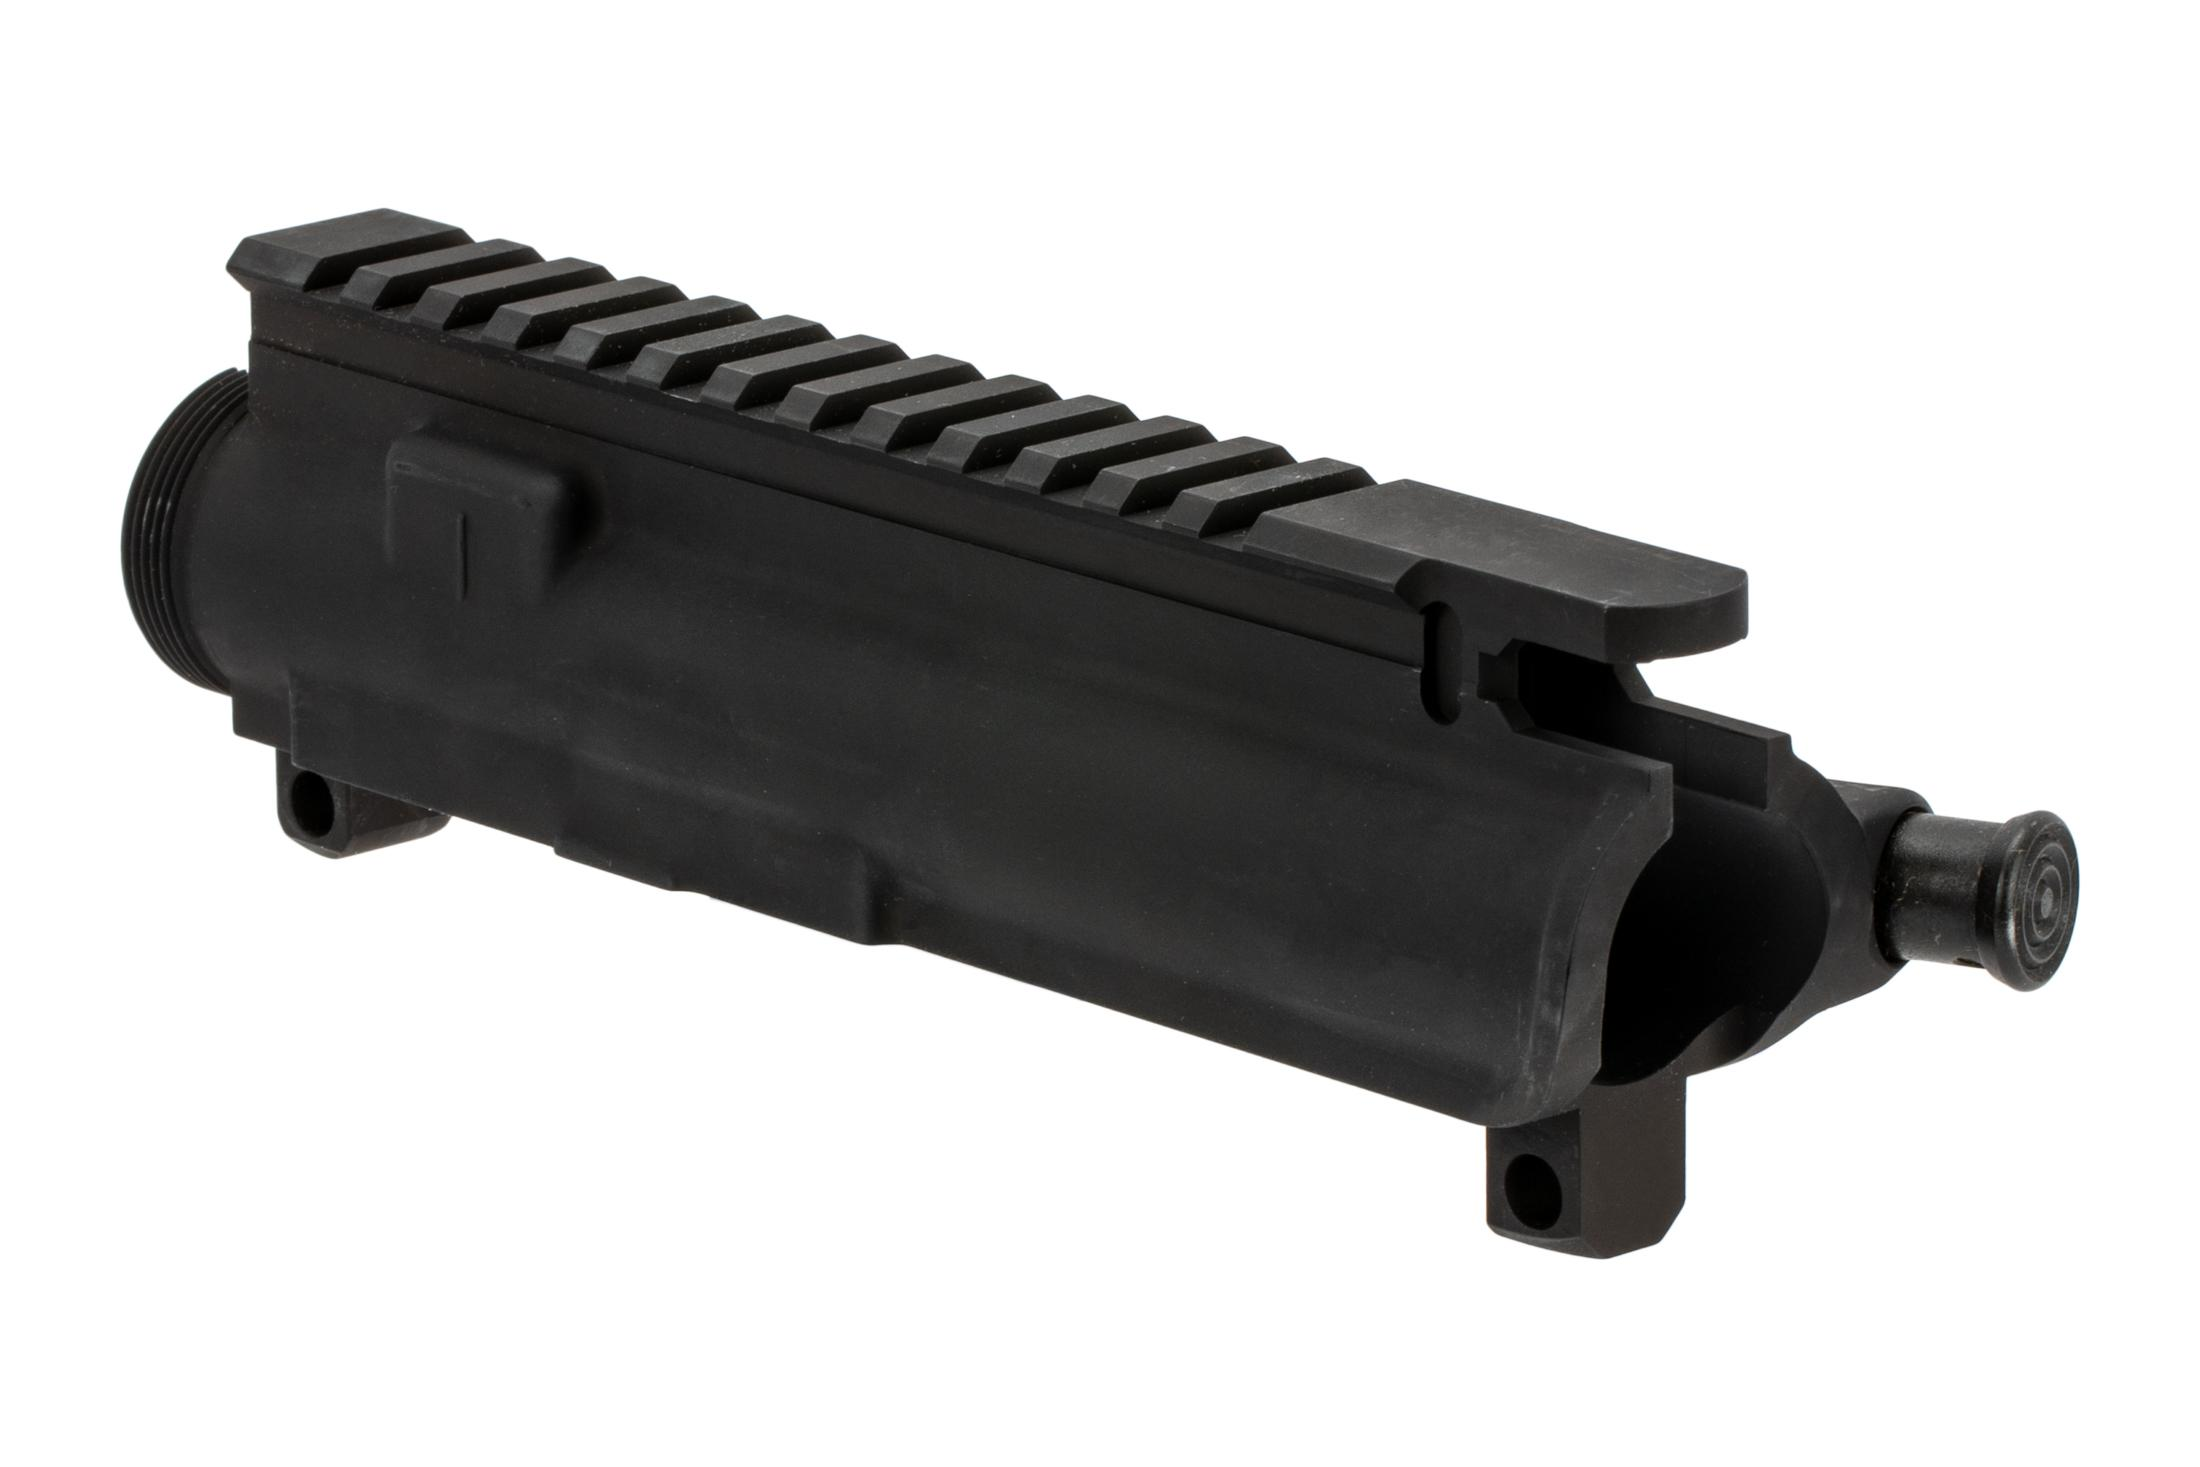 The Colt AR15 upper receiver features t-markings for optic placement